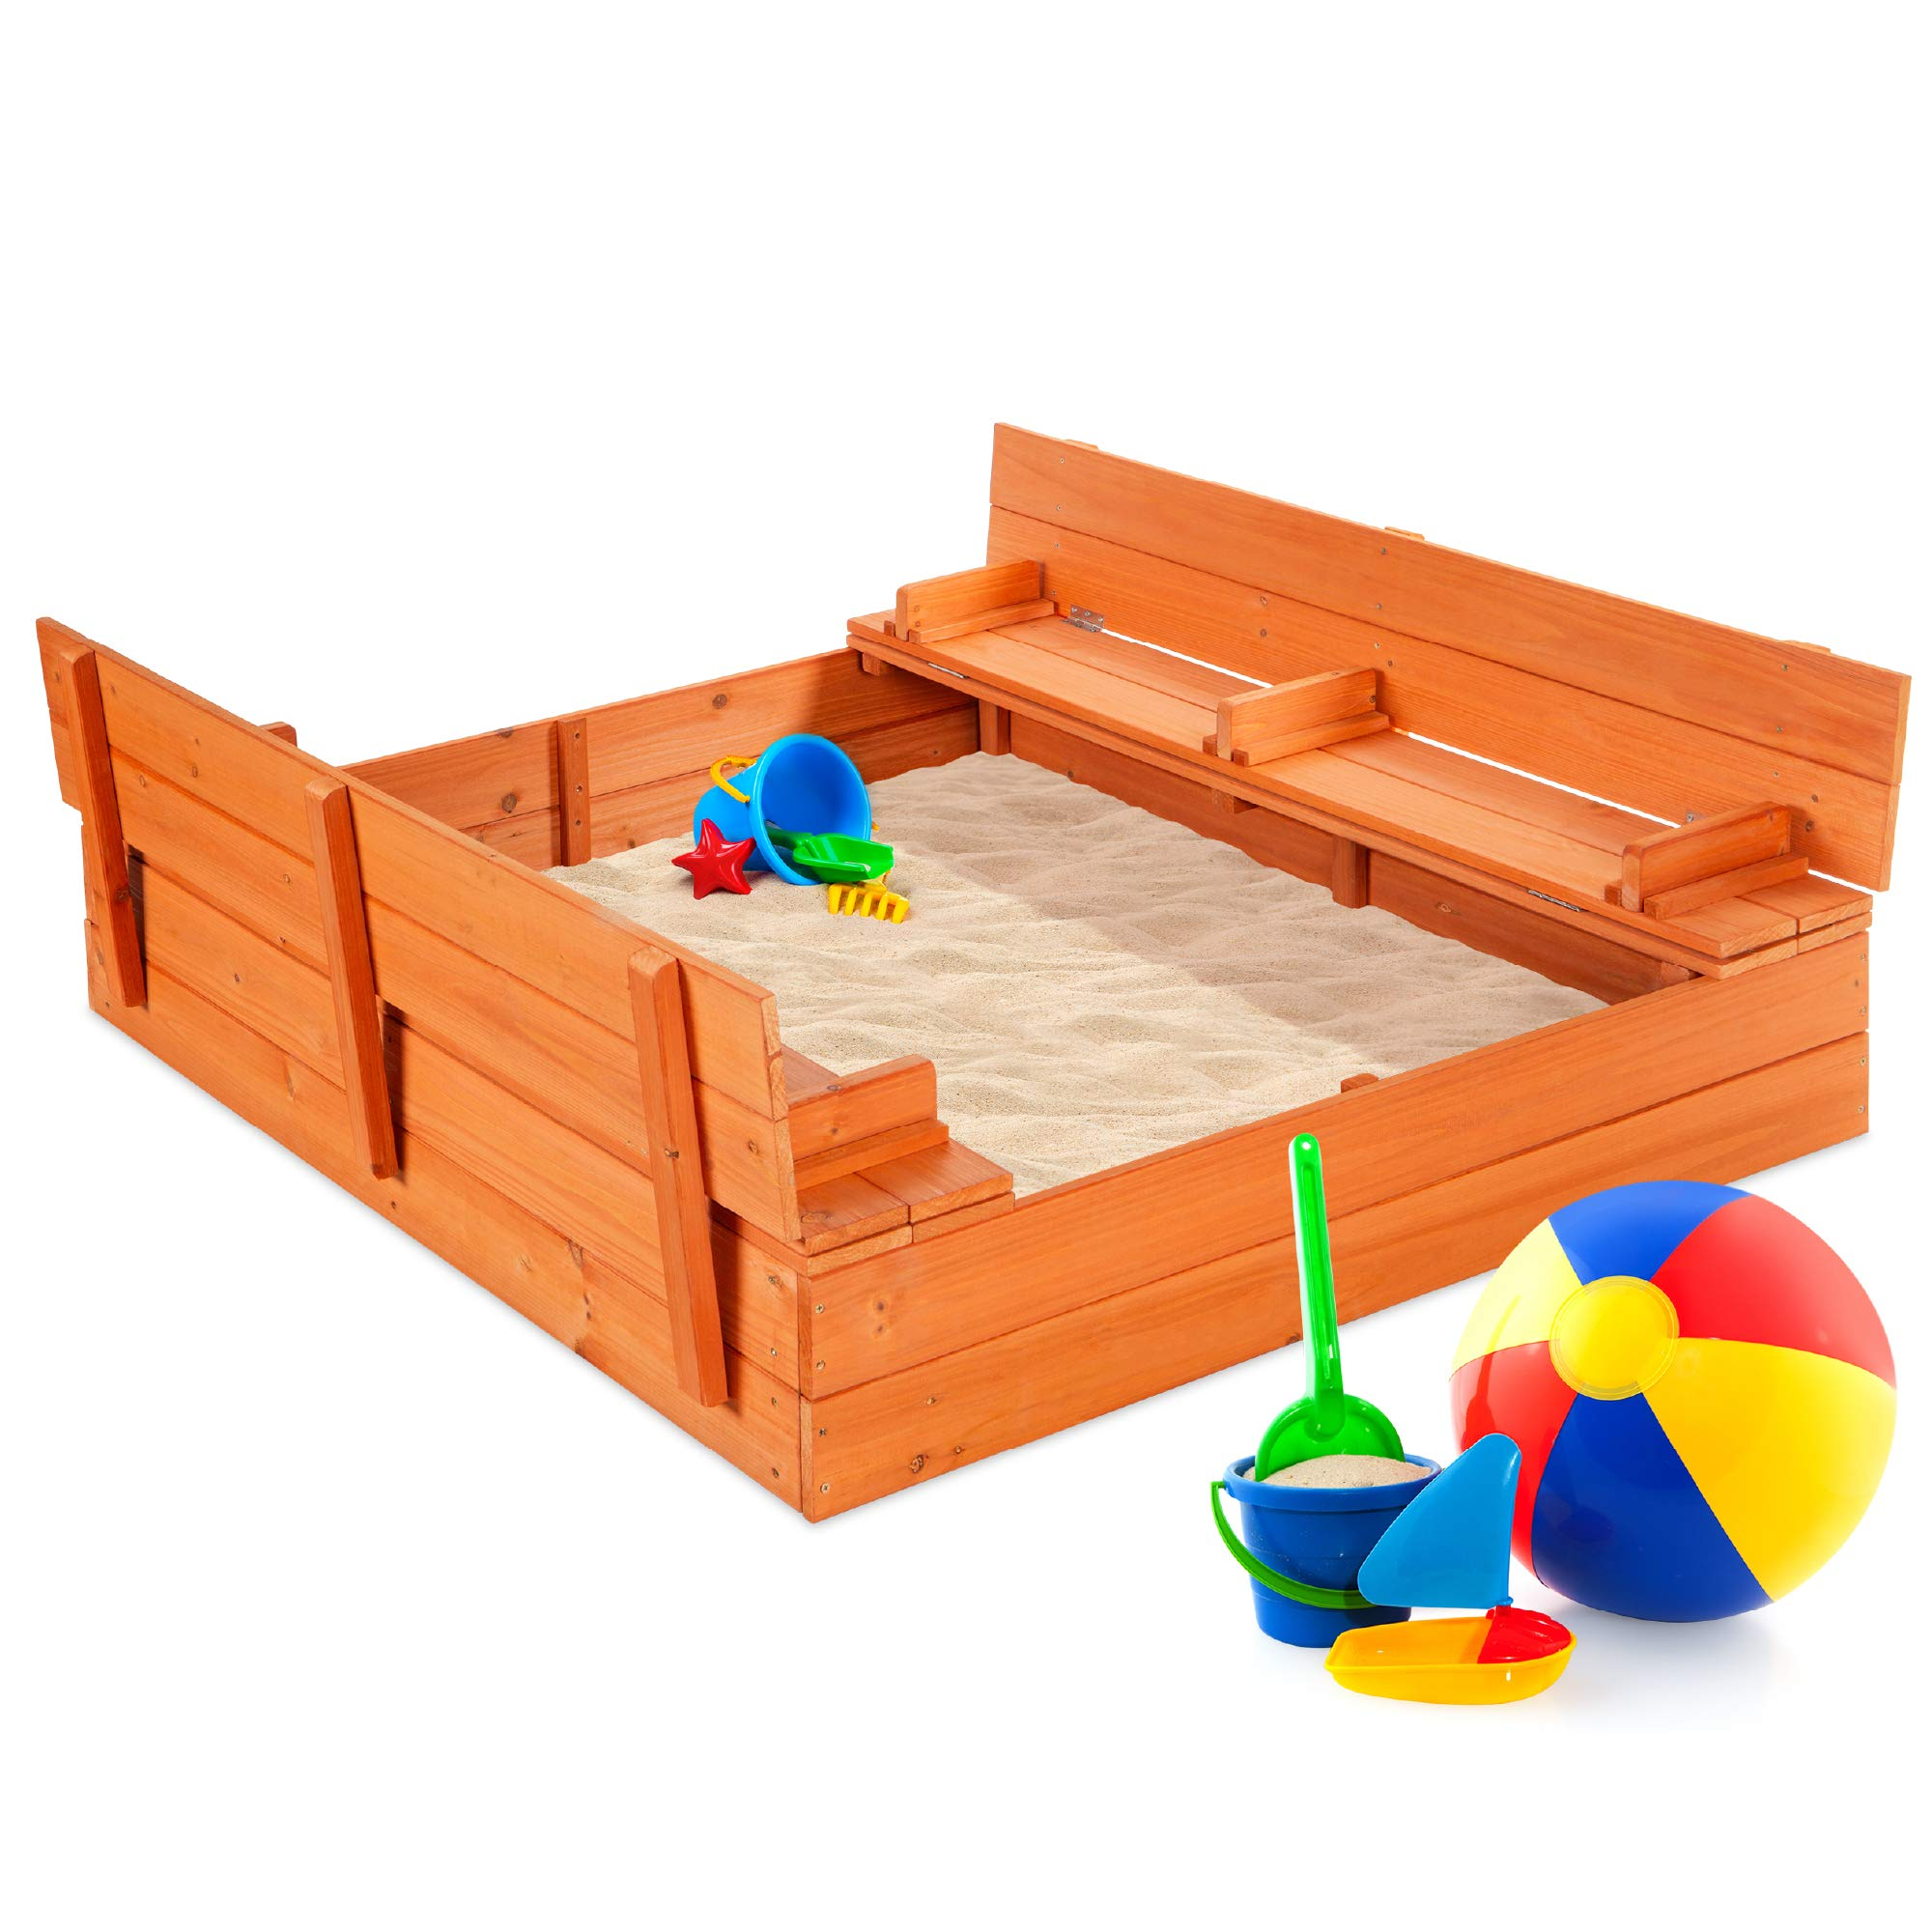 Best Choice Products 47x47in Kids Large Wooden Sandbox for Backyard, Outdoor Play w/Cedar Wood, 2 Foldable Bench Seats, Sand Protection, Bottom Liner - Brown